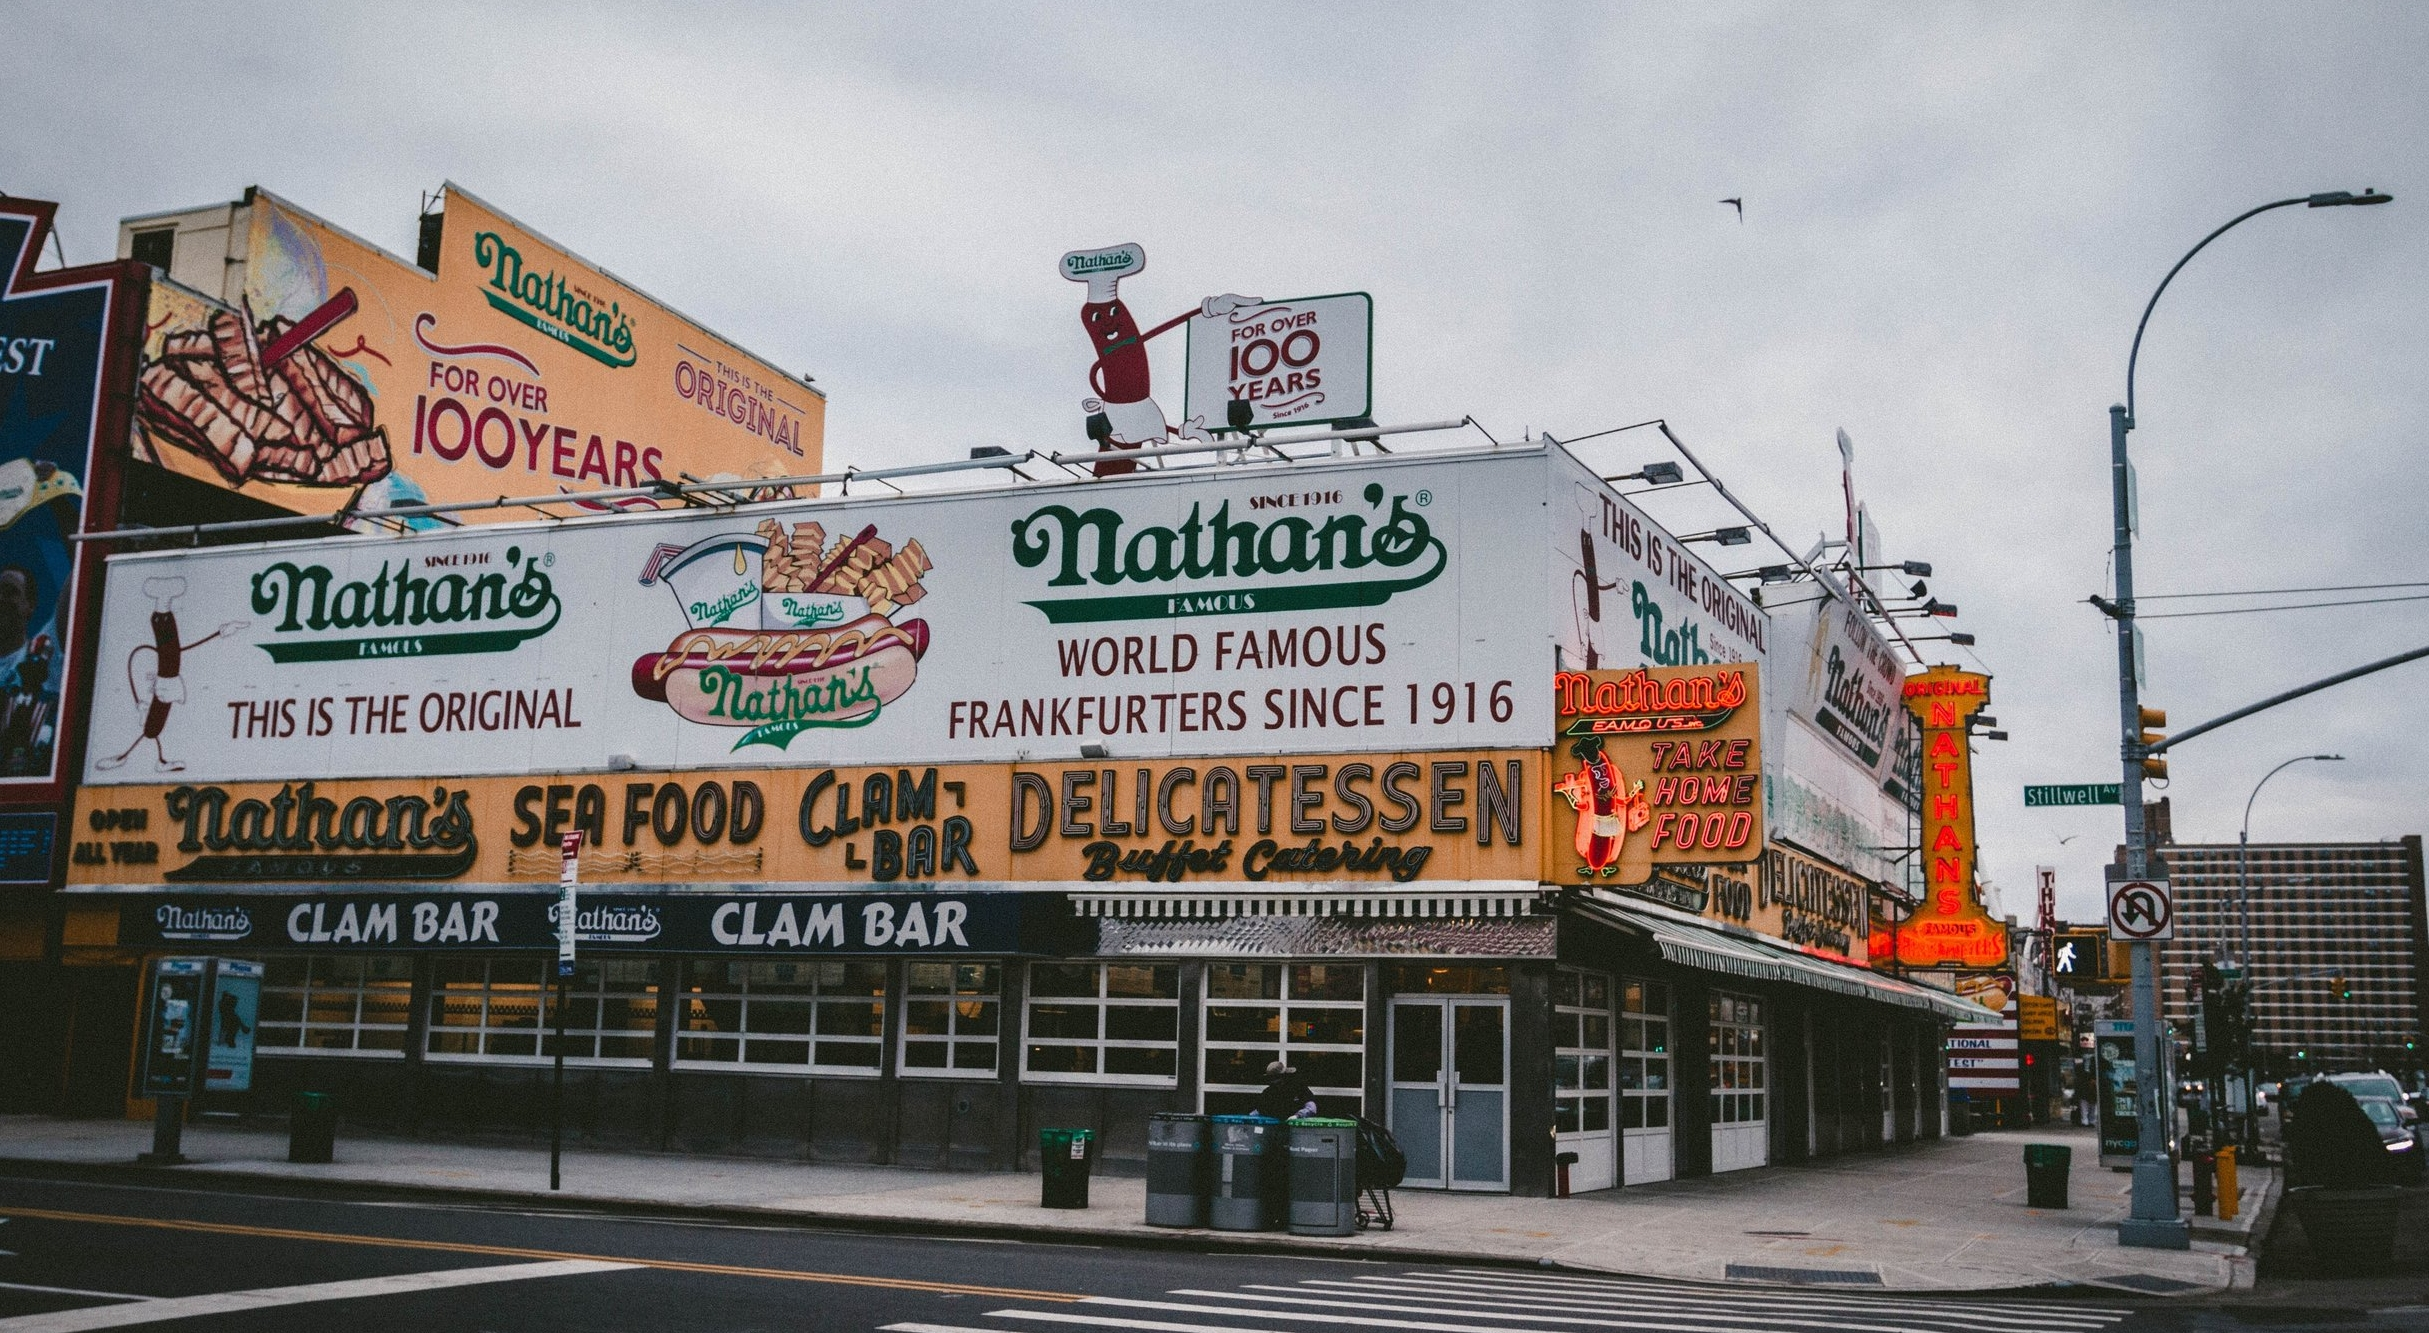 """Every Fourth of July, thousands of bystanders flock to Coney Island to watch the Nathan's Famous Hot Dog Eating Contest. The premise is simple—who can eat the most of Nathan's hot dogs in 10 minutes? Part eating contest, part marketing strategy, and part tradition, the competition harked back to the brand's invention more than 100 years ago. In 1916, founder Nathan Handwerker opened his first hot dog stand on Coney Island, starting an empire that would eventually reach millions of customers across the country and around the world. Handwerker sold his hot dogs for five cents apiece—half the price of his competitor and former employer Feltman's—and soon gained a reputation for offering inexpensive, delicious food. According to urban legend, the Hot Dog Eating Contest began that same year on July 4, when four immigrants challenged each other to eat as many Nathan's hot dogs as possible to prove who was the most patriotic (the alleged winner, James Mullen, scarfed down 13 hot dogs in 12 minutes).  Nathan's started with hot dogs based on a family recipe but has since expanded its offerings to include hot dog buns, as well as fixings like pickles, onion rings, and chili topping and sides like its famous crinkle-cut French fries. The early years attracted the attention of celebrities such as Al Capone and Clara Bow and presidents like Franklin Delano Roosevelt. The expansion was reasonably slow, but a clam bar, full-service restaurants, and a booming franchise operation developed in the second half of the twentieth century. Today, Nathan's products are found in local grocery stores, as well as dedicated Nathan's restaurants, and concession stands in major cities across the U.S.  Nathan's brand recognition is such that the name is synonymous with words like """"hot dog,"""" """"crinkle-cut""""—and even """"America."""" In 1939, FDR brought Nathan's famous hot dogs to the King and Queen of England as an act of patriotism. In 2017, Nathan's earned the distinction of being the """"first official h"""